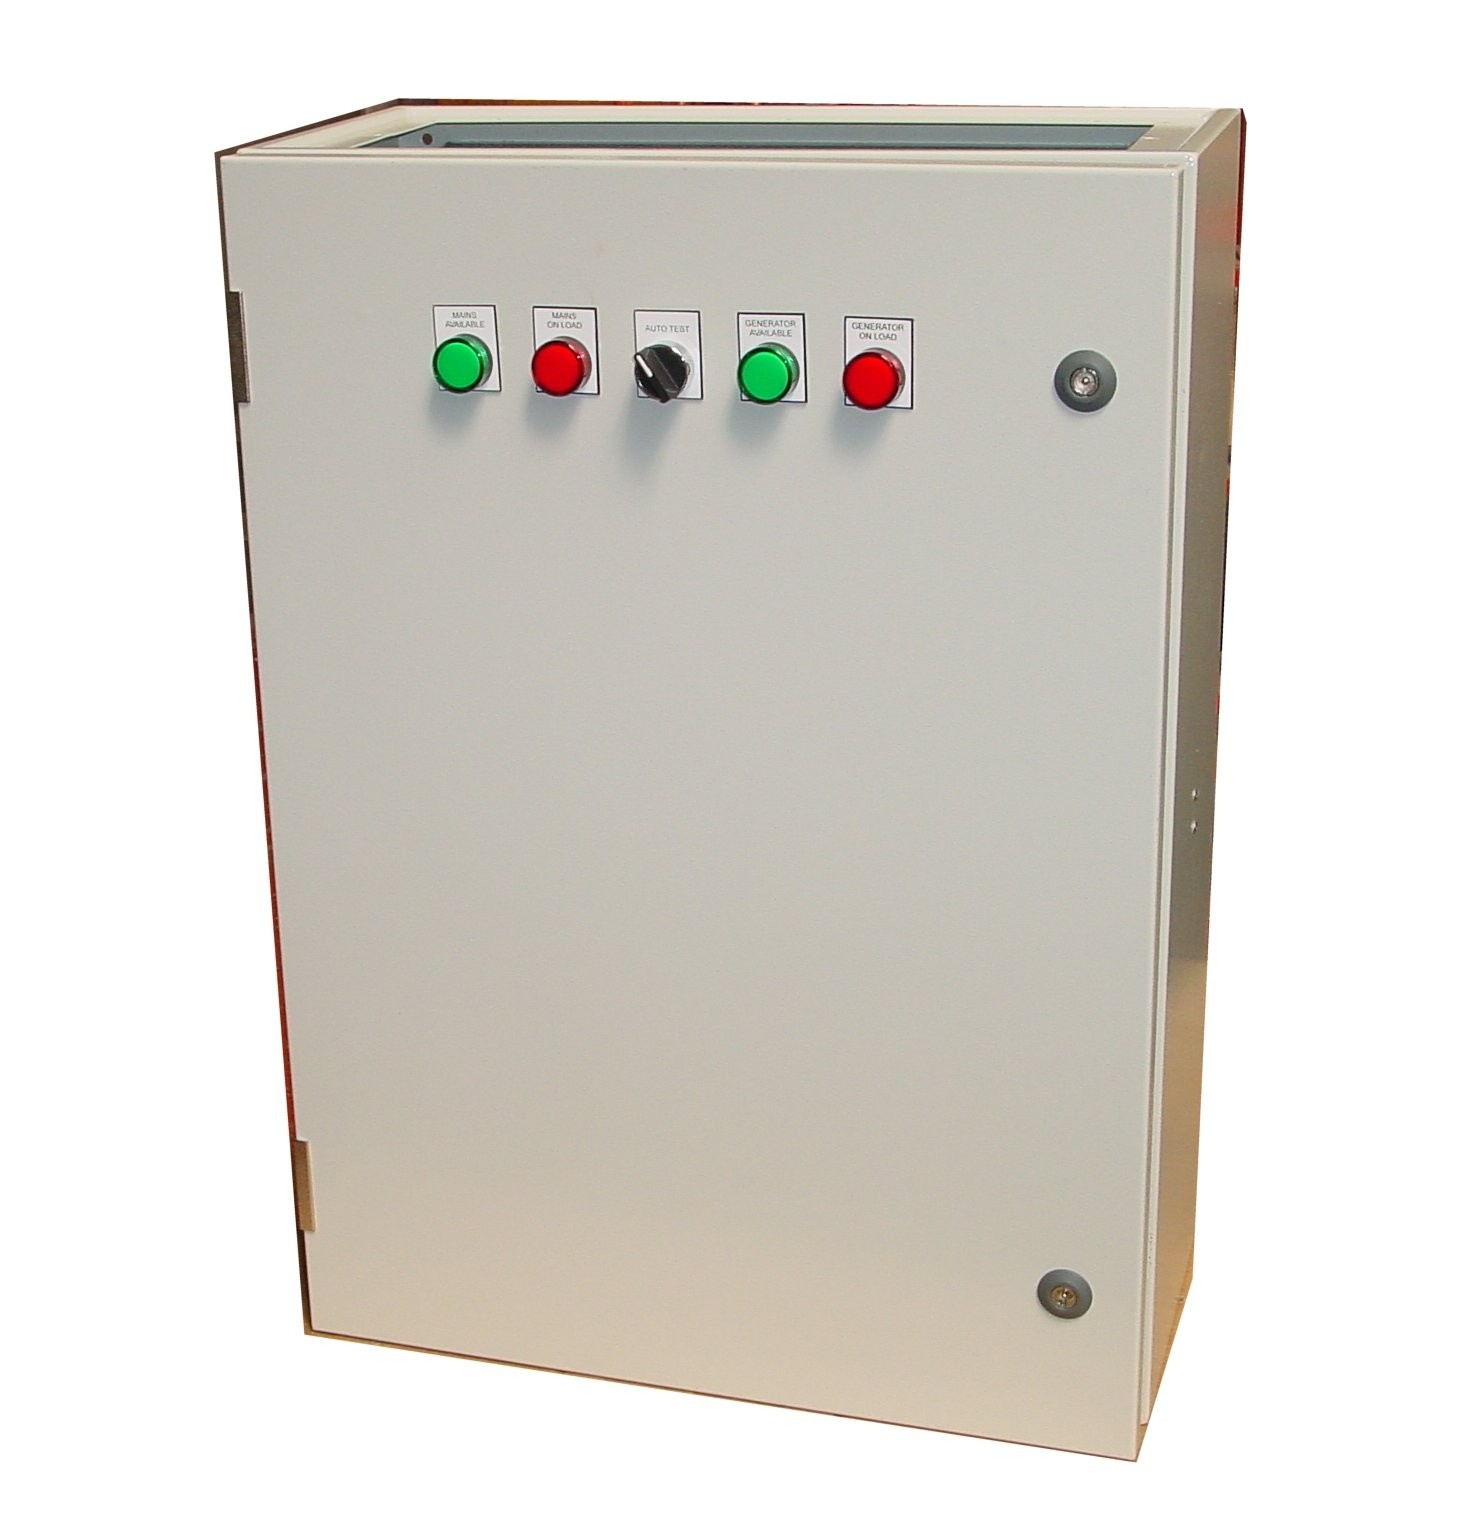 160A ATS 3 Phase 400V, UVR Controlled, ABB Contactors